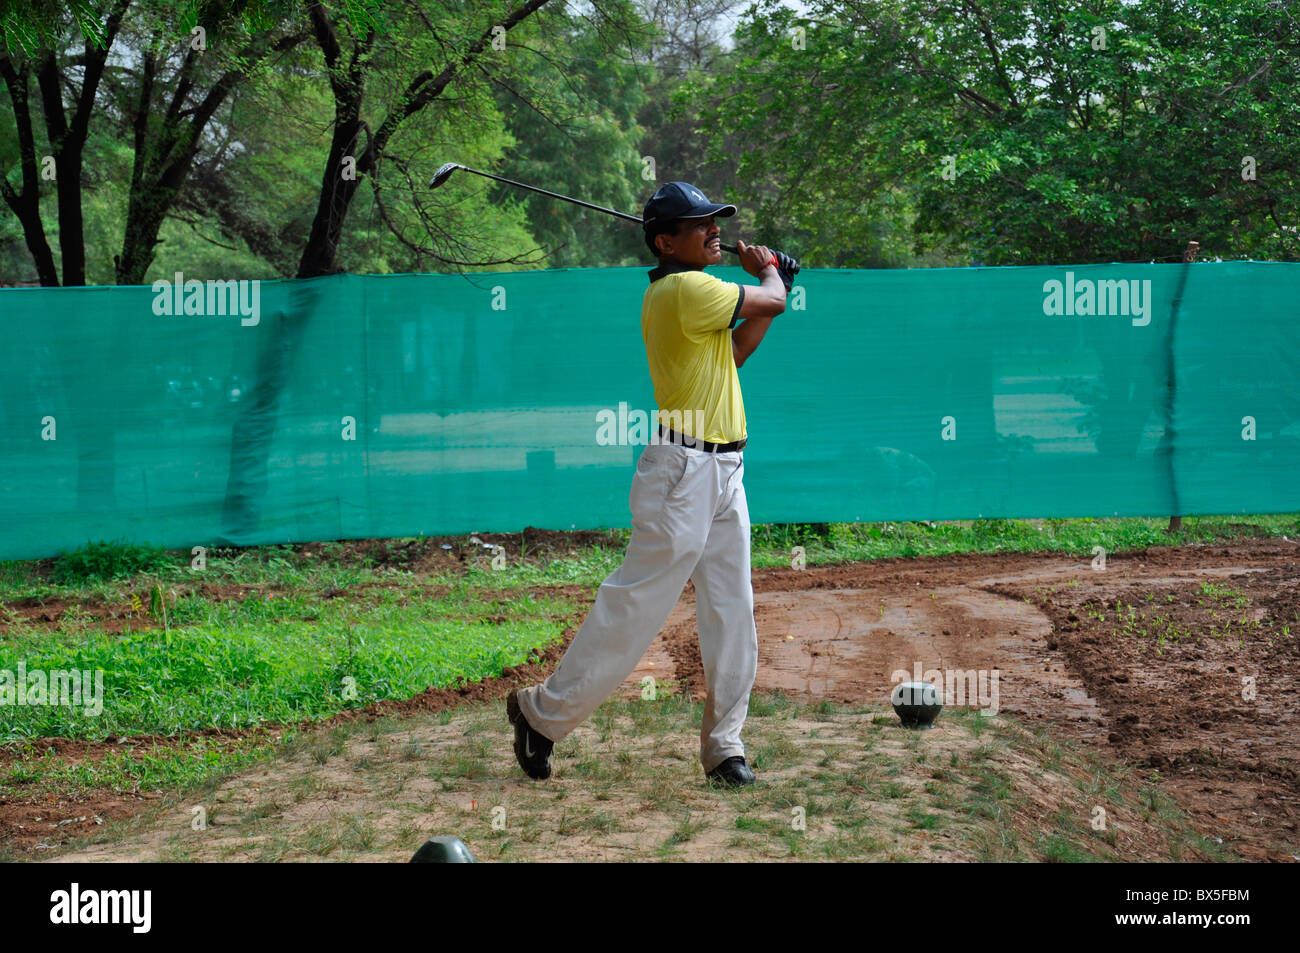 An Indian golfer teeing off - Stock Image